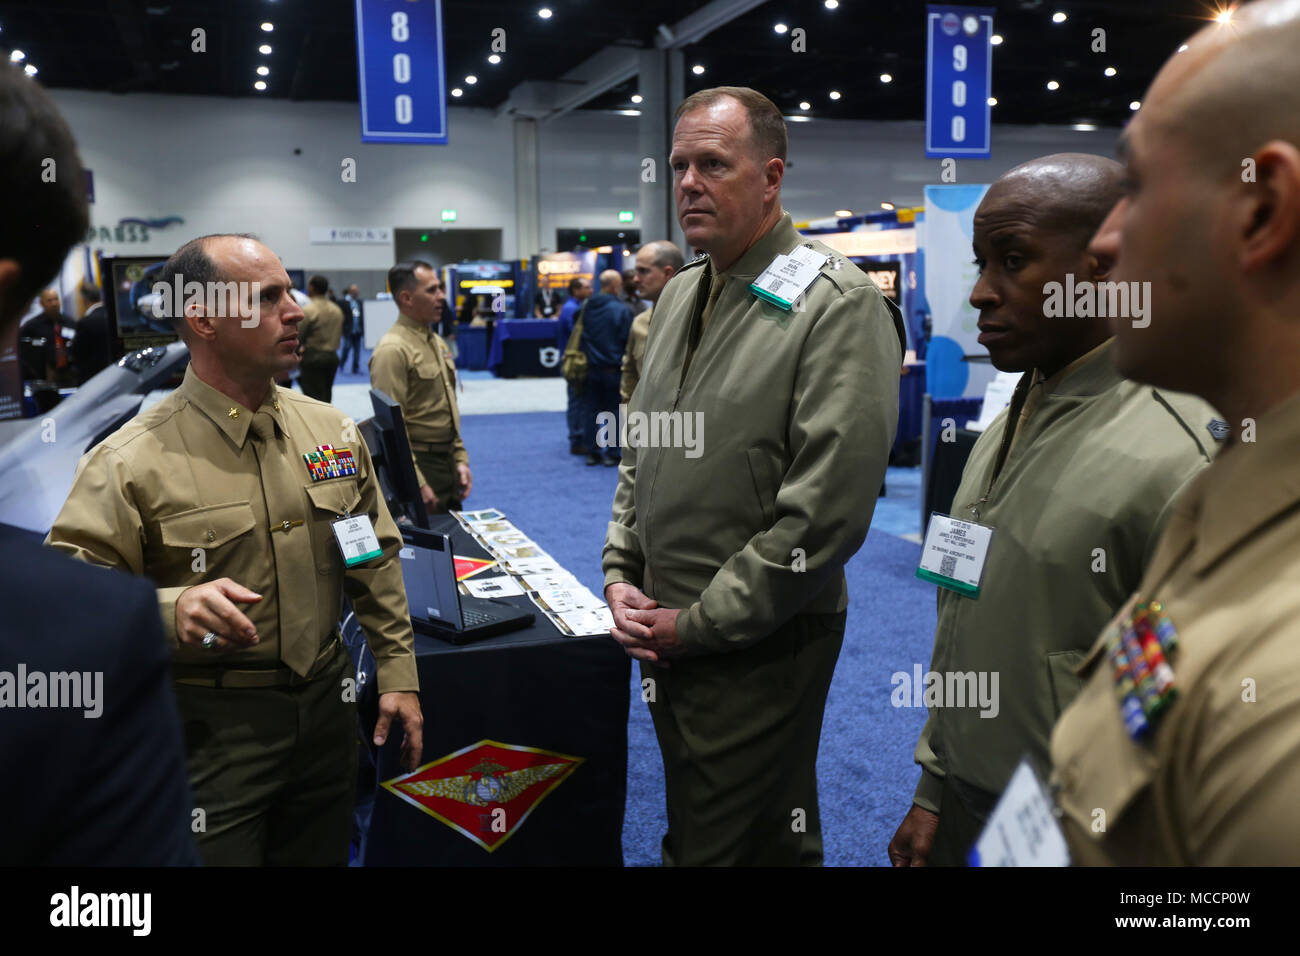 Maj. Gen. Mark R. Wise, 3rd Marine Aircraft Wing (MAW) commanding general, visits the 3rd MAW display at WEST 2018 in San Diego, Feb. 8. WEST 2018 allows innovators, industry leaders and the military the opportunity to network, learn and work together with the goal of meeting and overcoming challenges facing today's Sea Services. (U.S. Marine Corps photo by Sgt. David Bickel/Released) Stock Photo